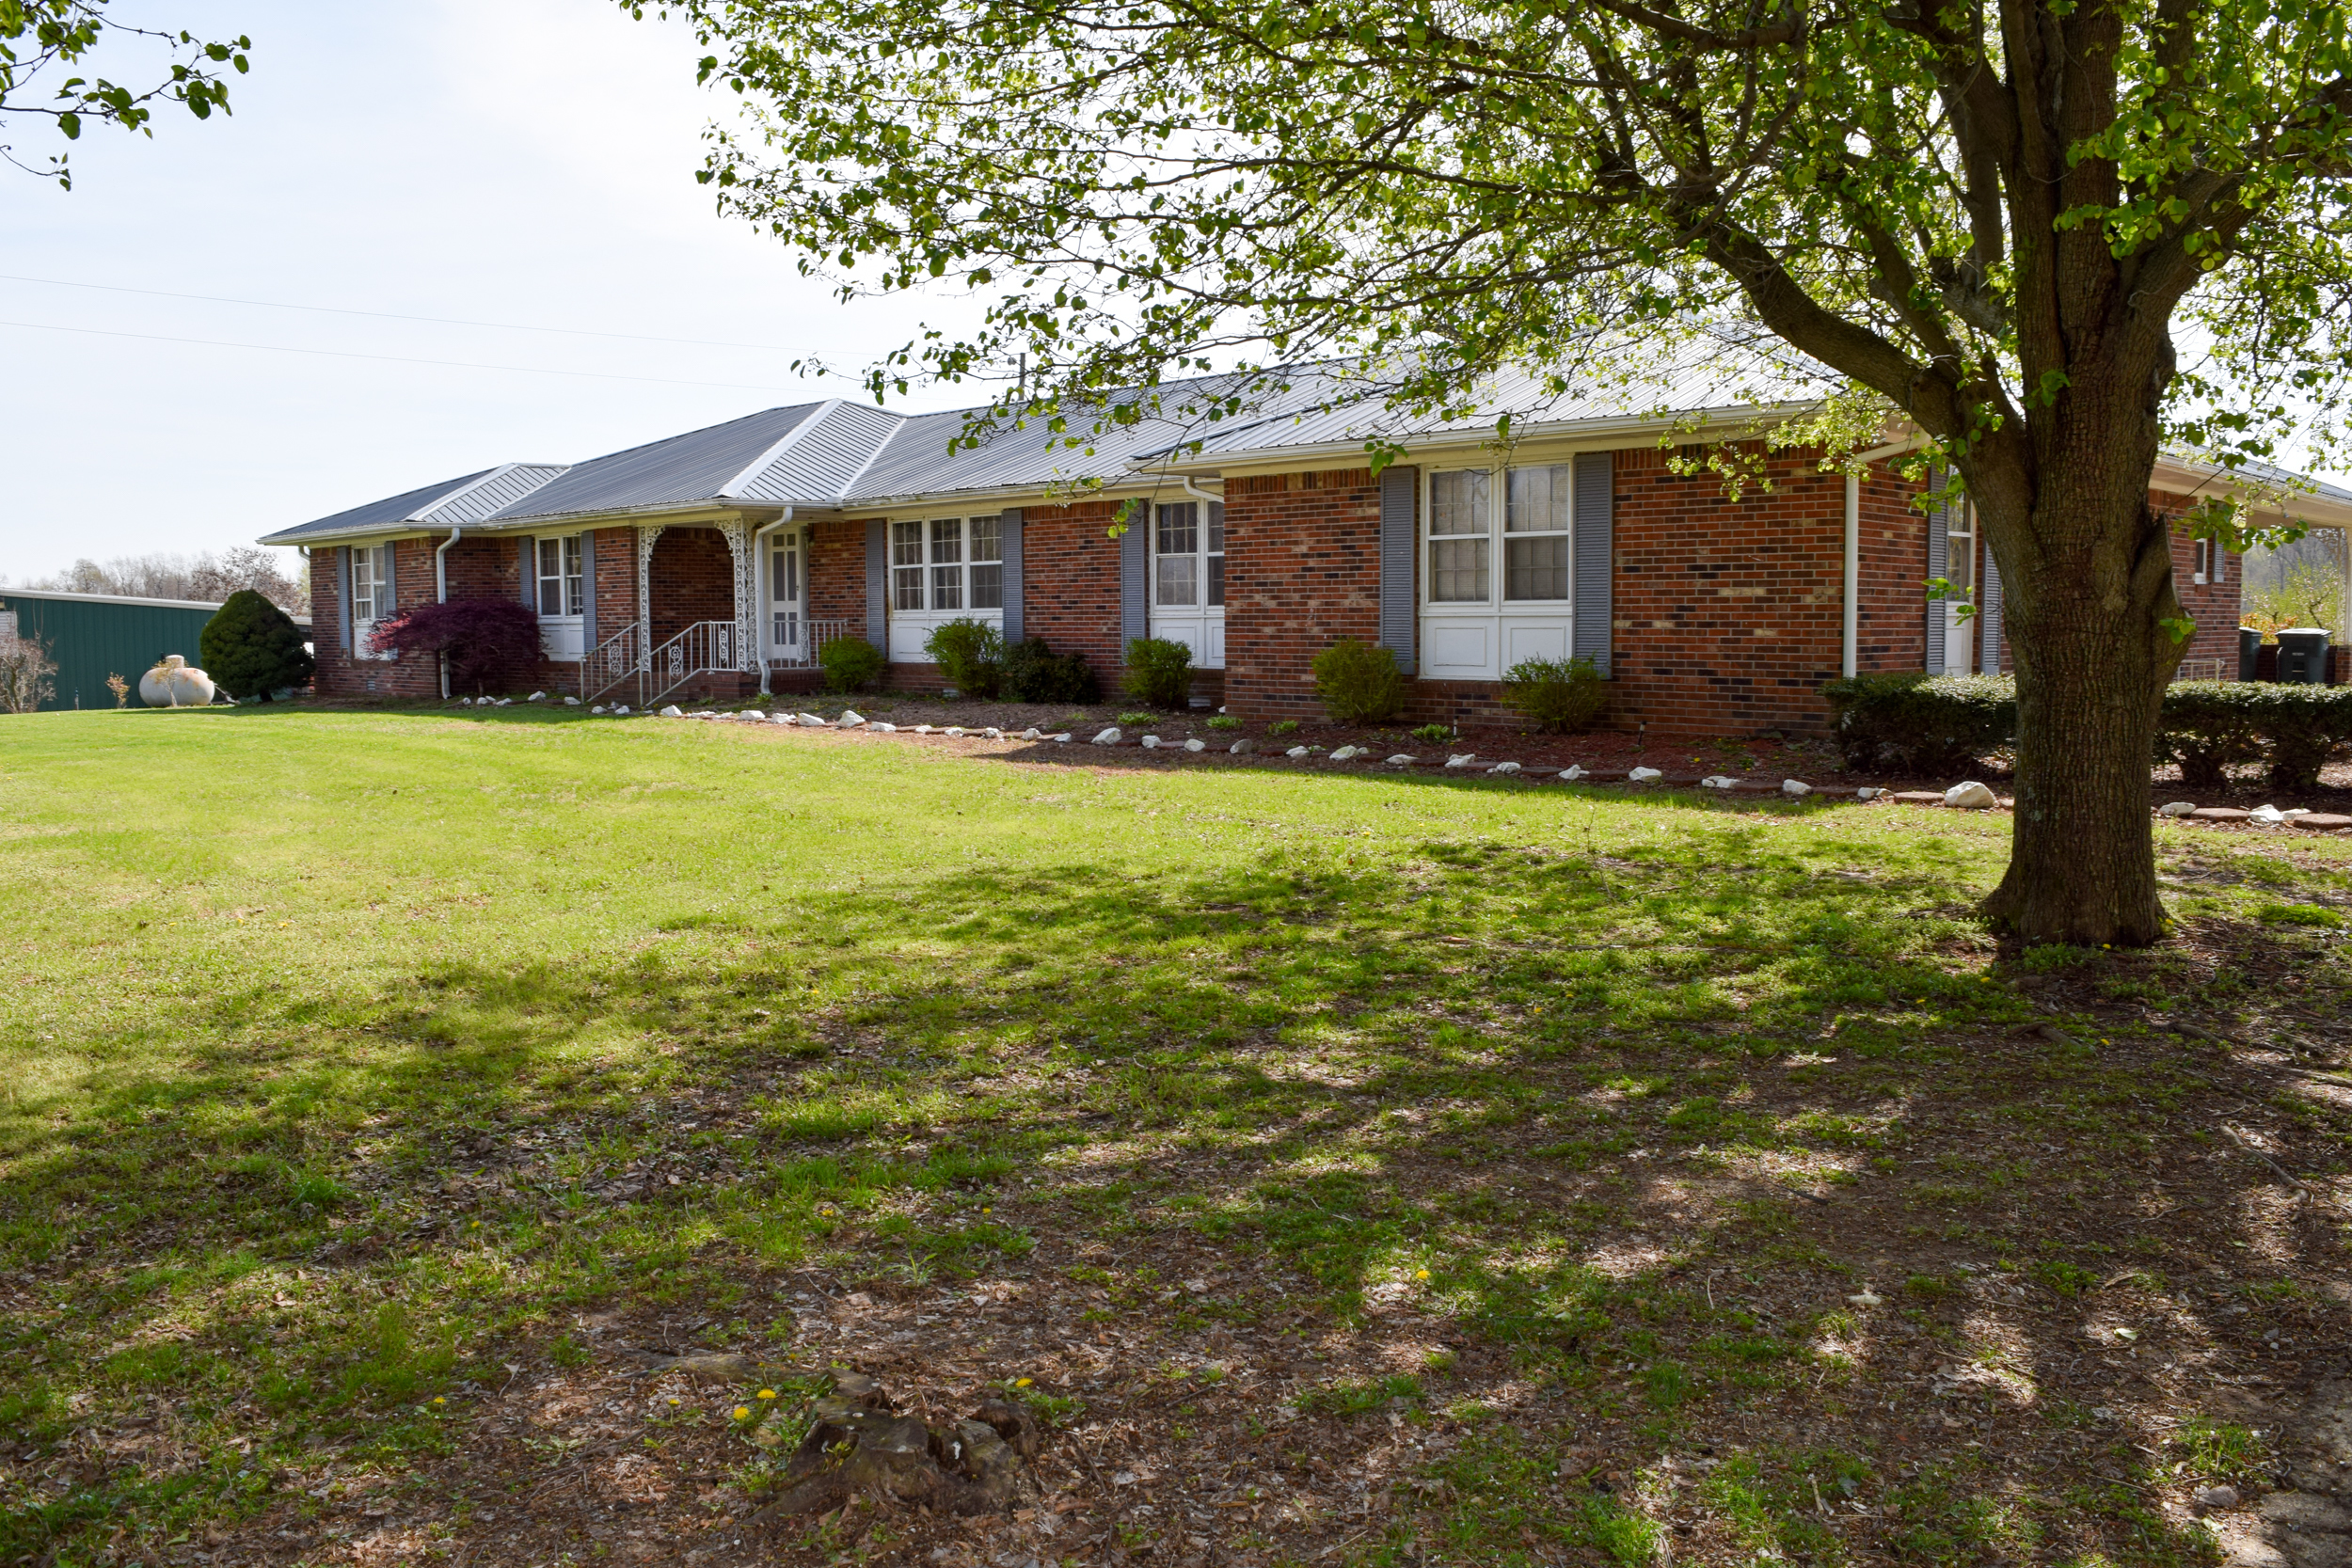 Obion TN TRACT 4 0577